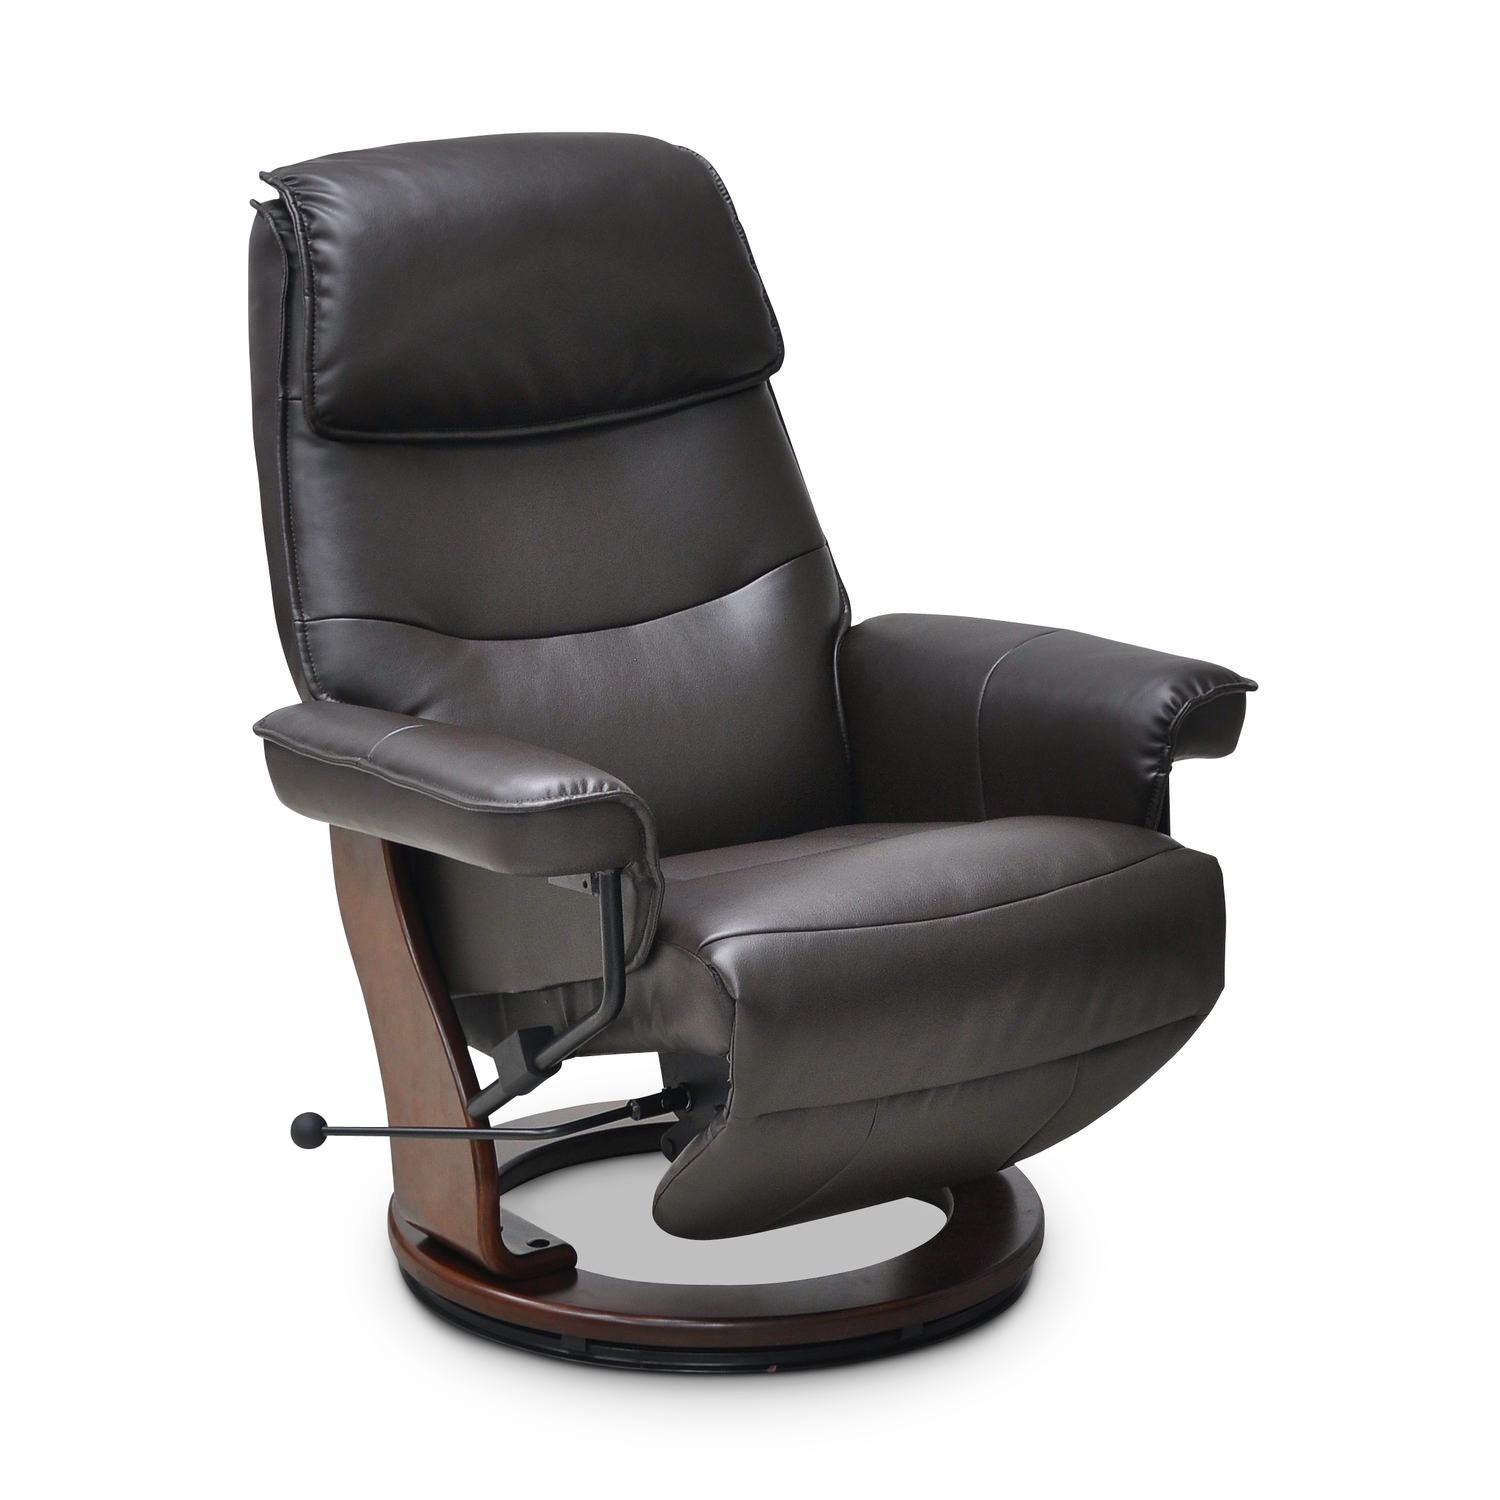 500 Count Swivel Recliner Chair At Hom Furniture